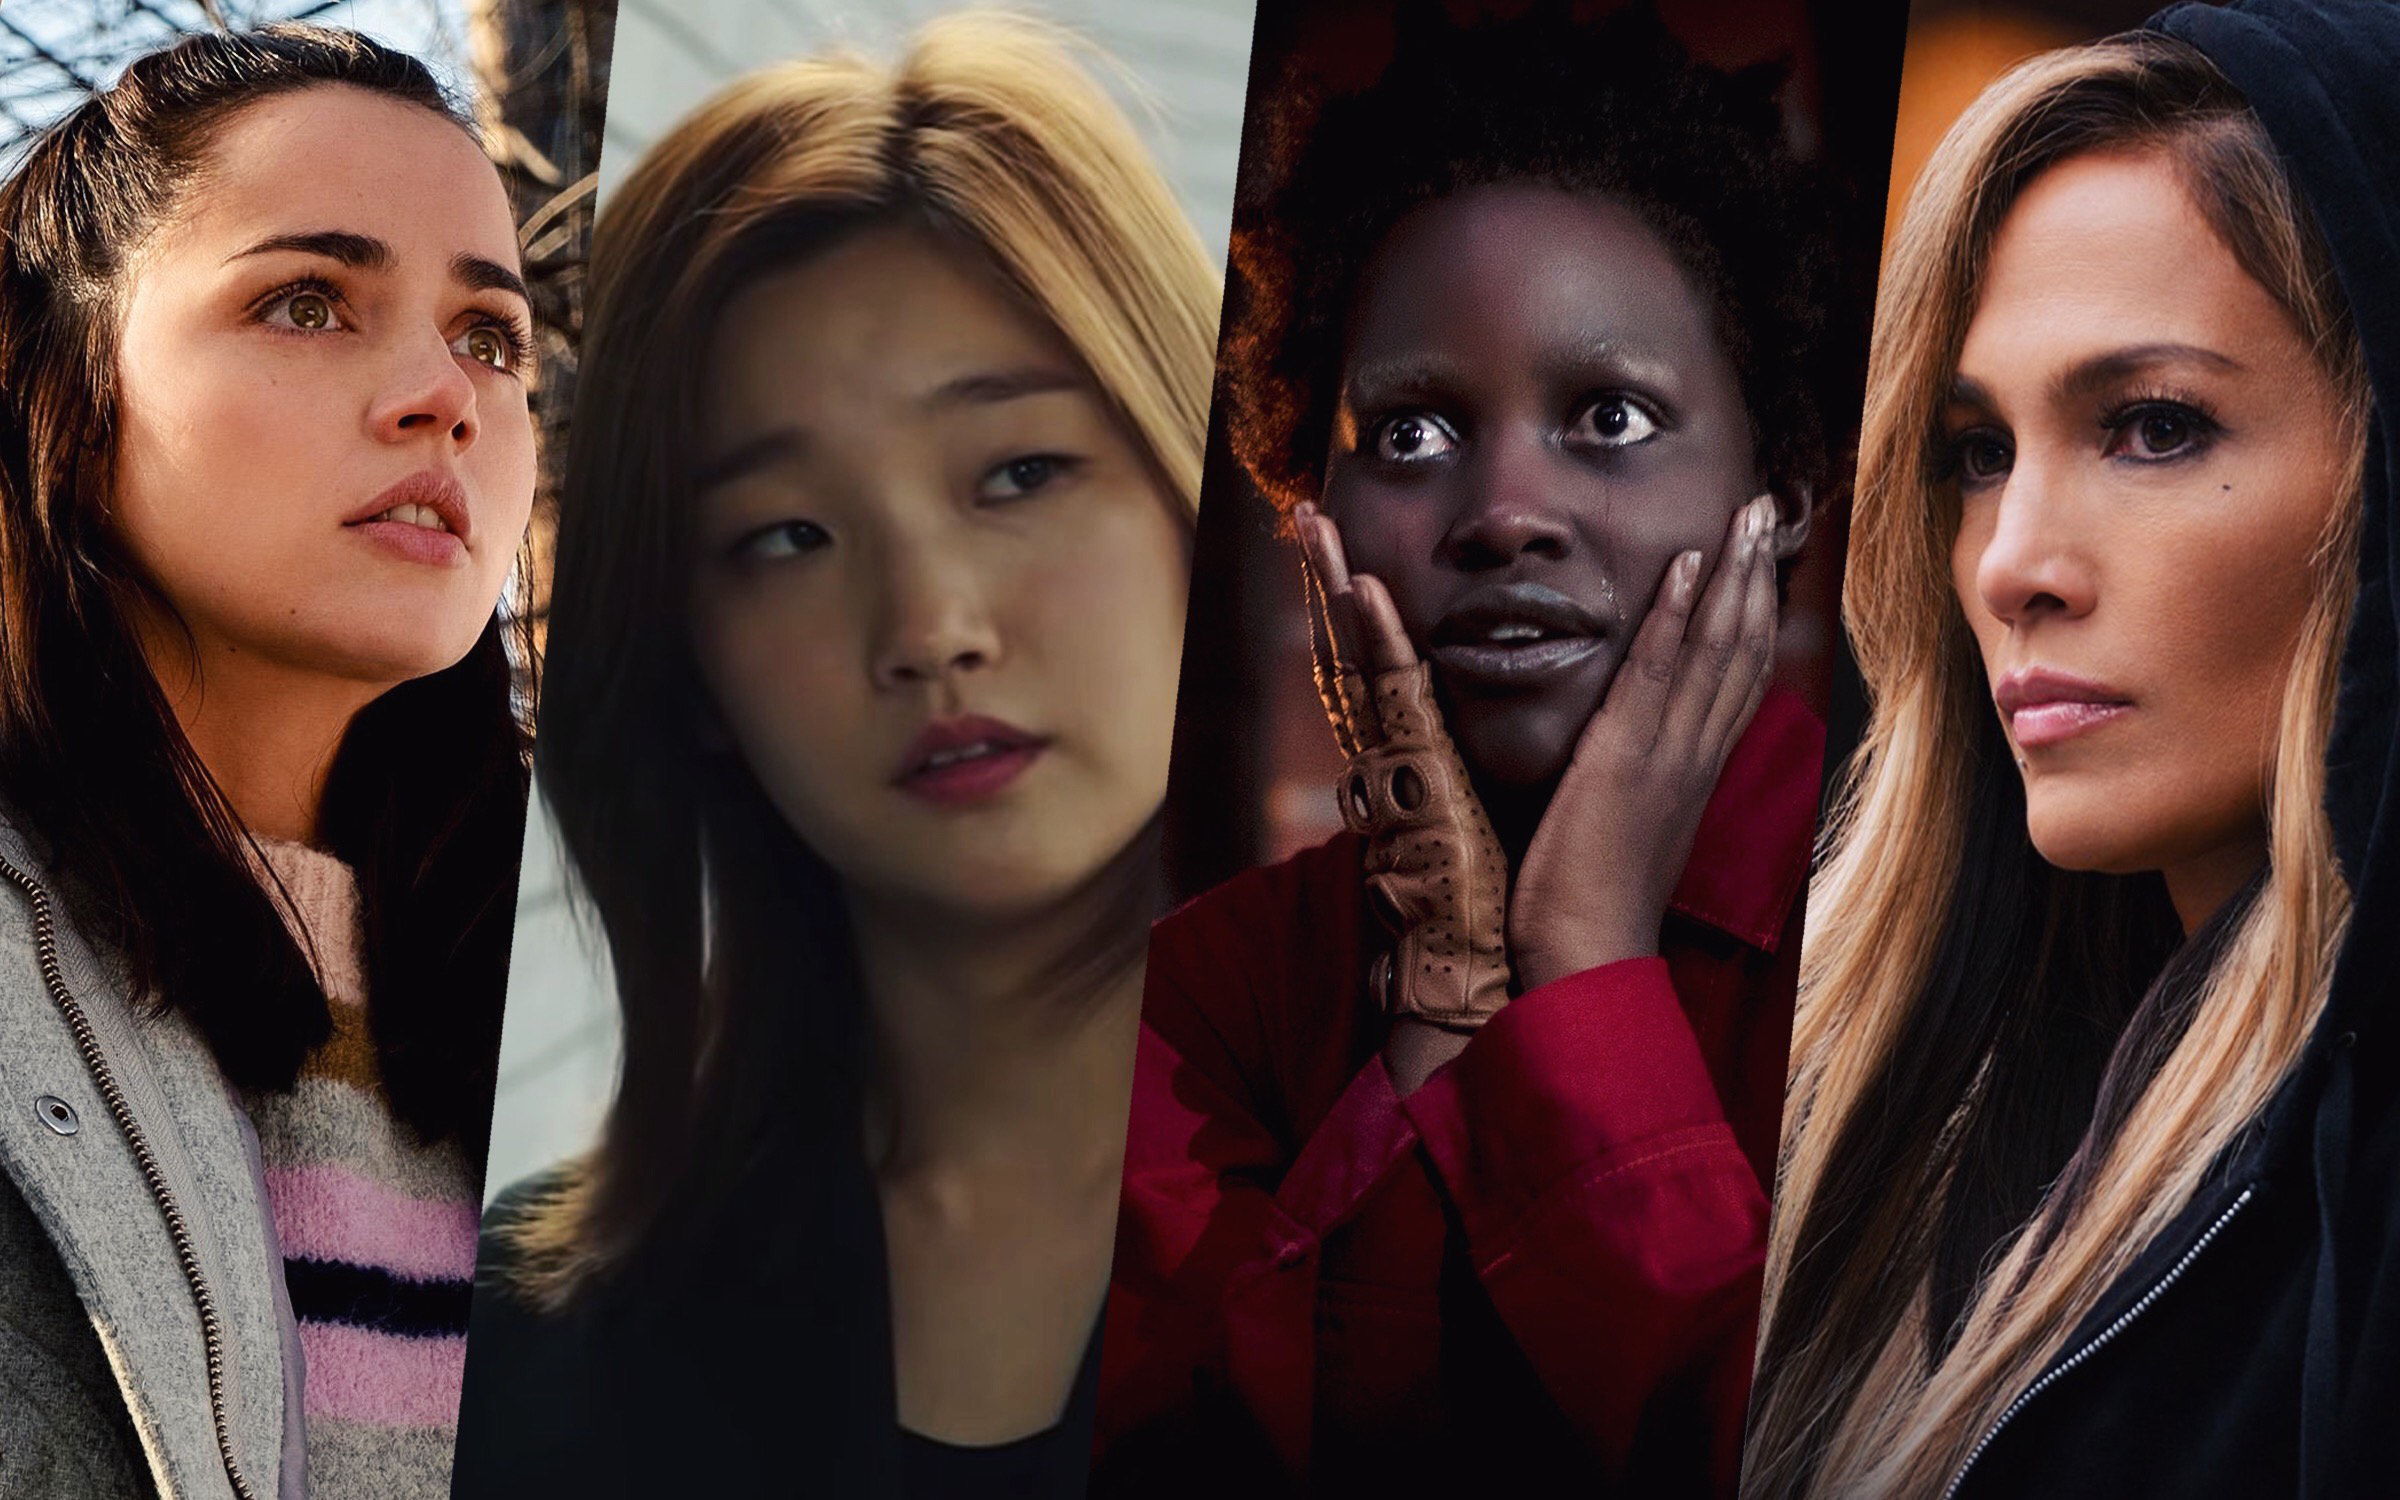 a side-by-side collage of four actresses: Ana de Armas, Park So-dam, Lupita Nyong'o, and Jennifer Lopez